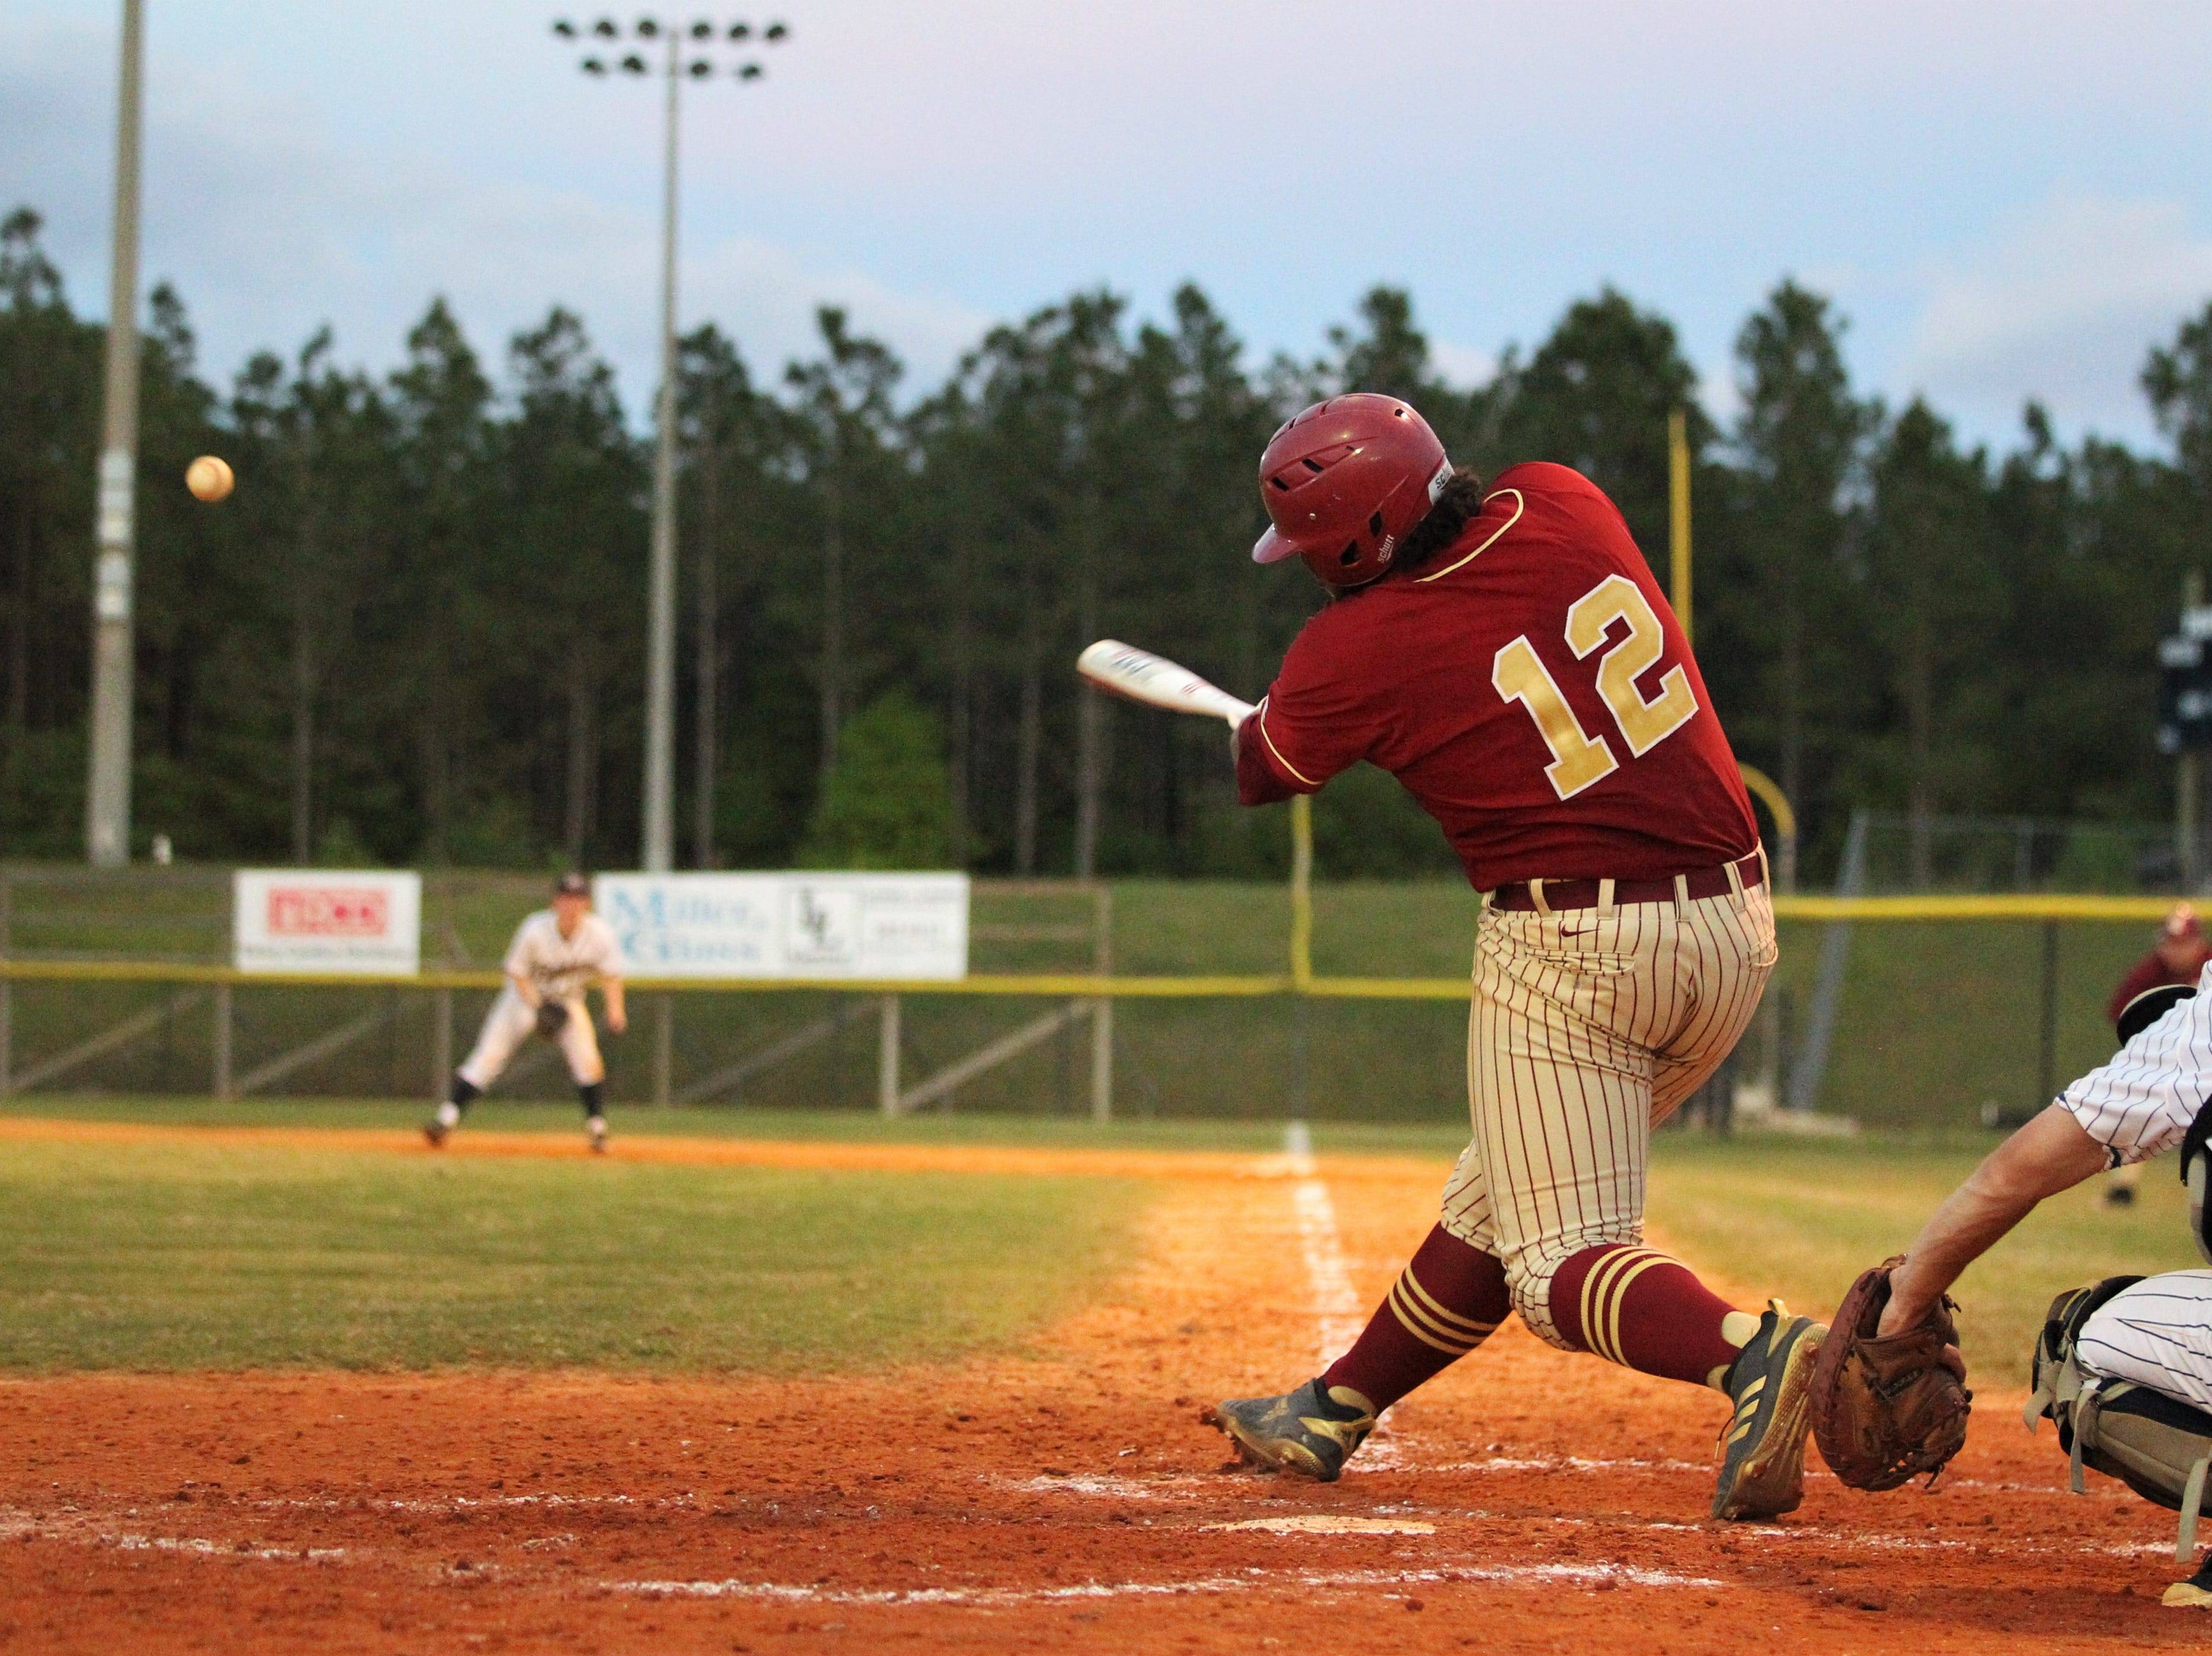 Florida High senior Malachi Burke laces a double as Florida High won 11-3 on the road at St. John Paul II on Tuesday, April 3, 2010.